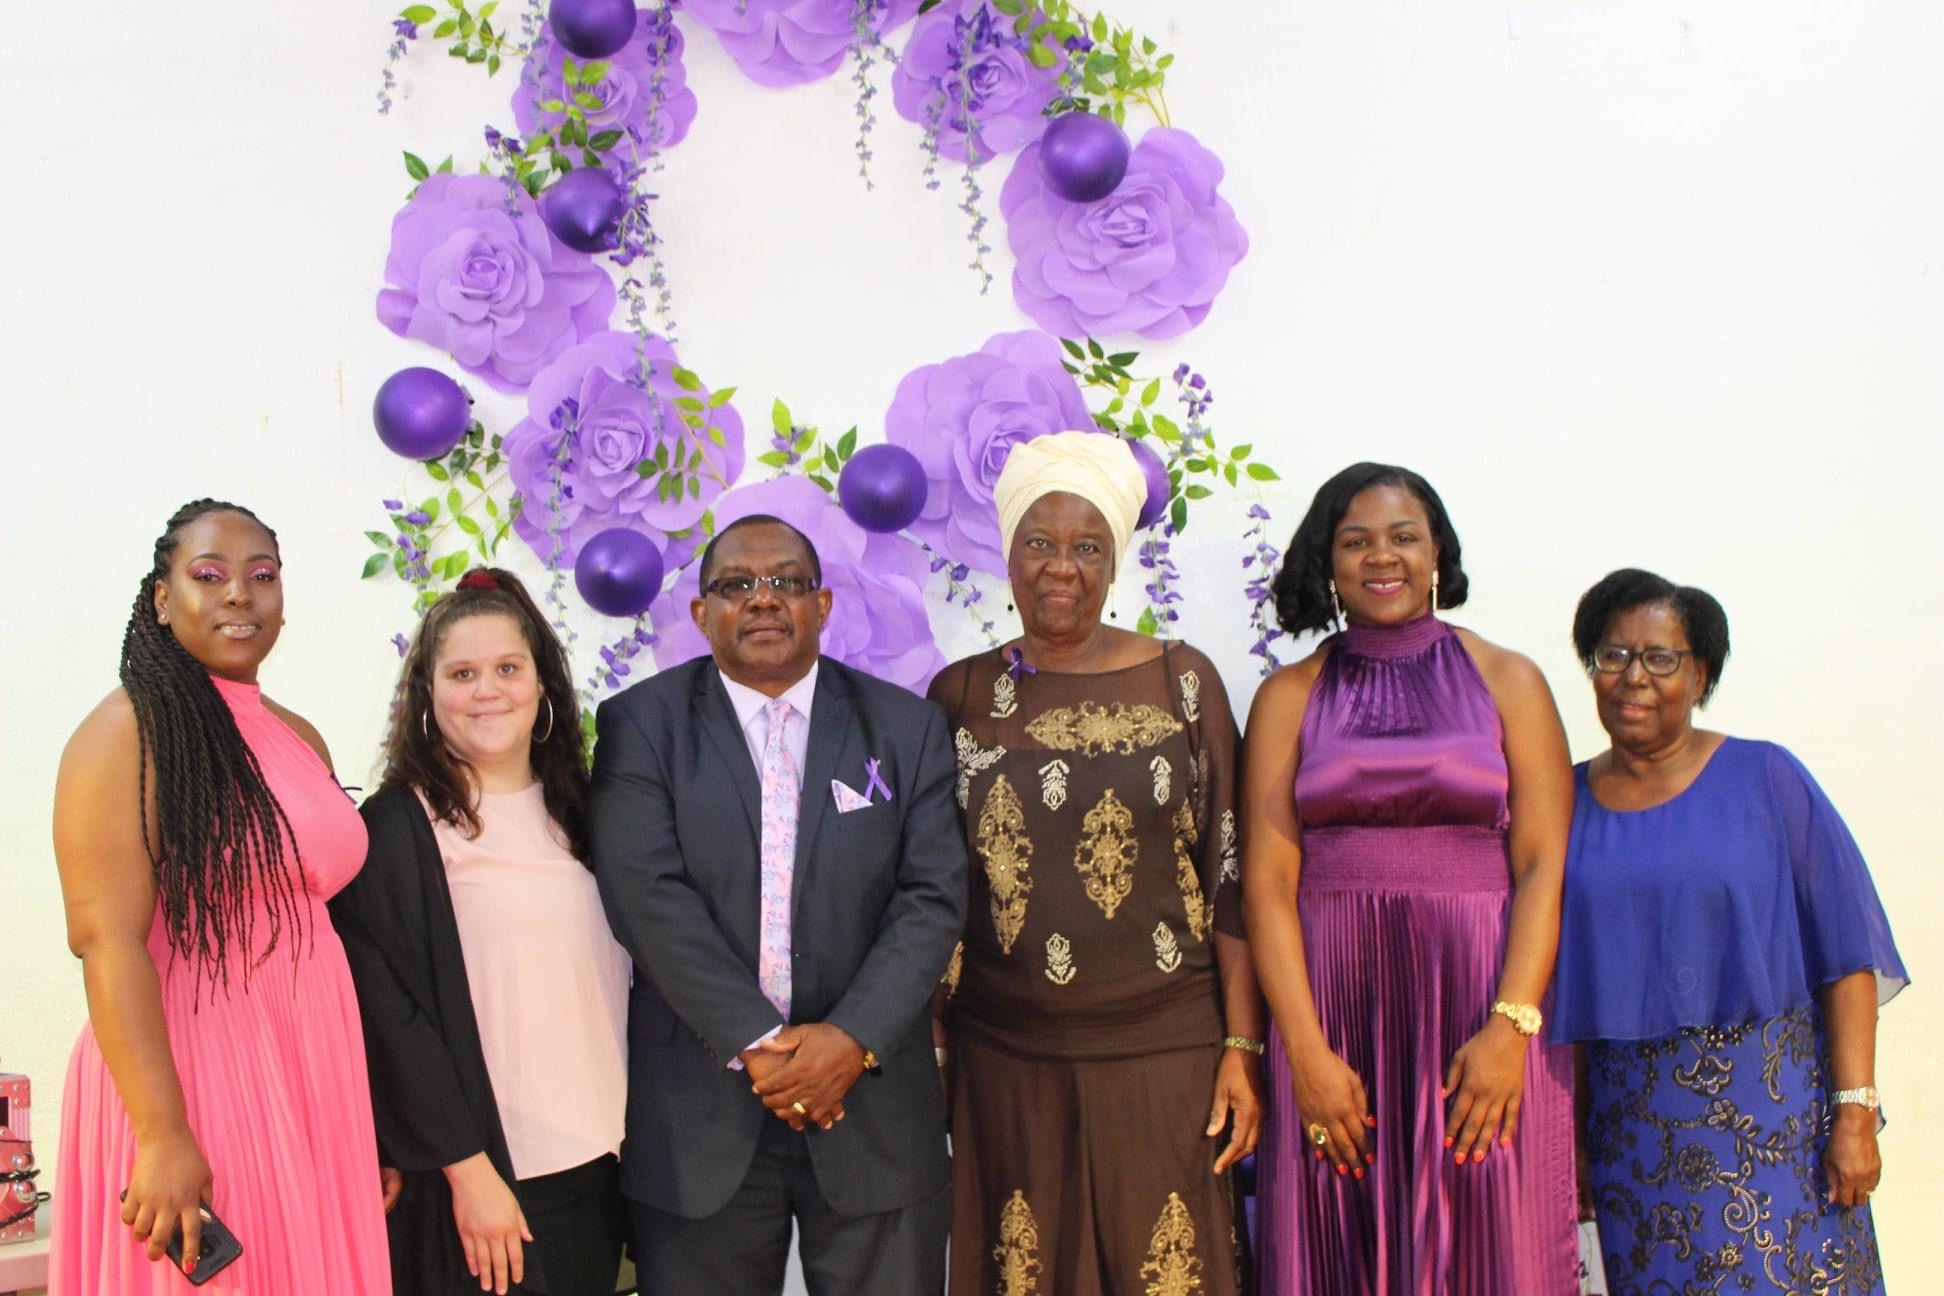 March-2020-International-Womens-Day-event-Saba.jpeg